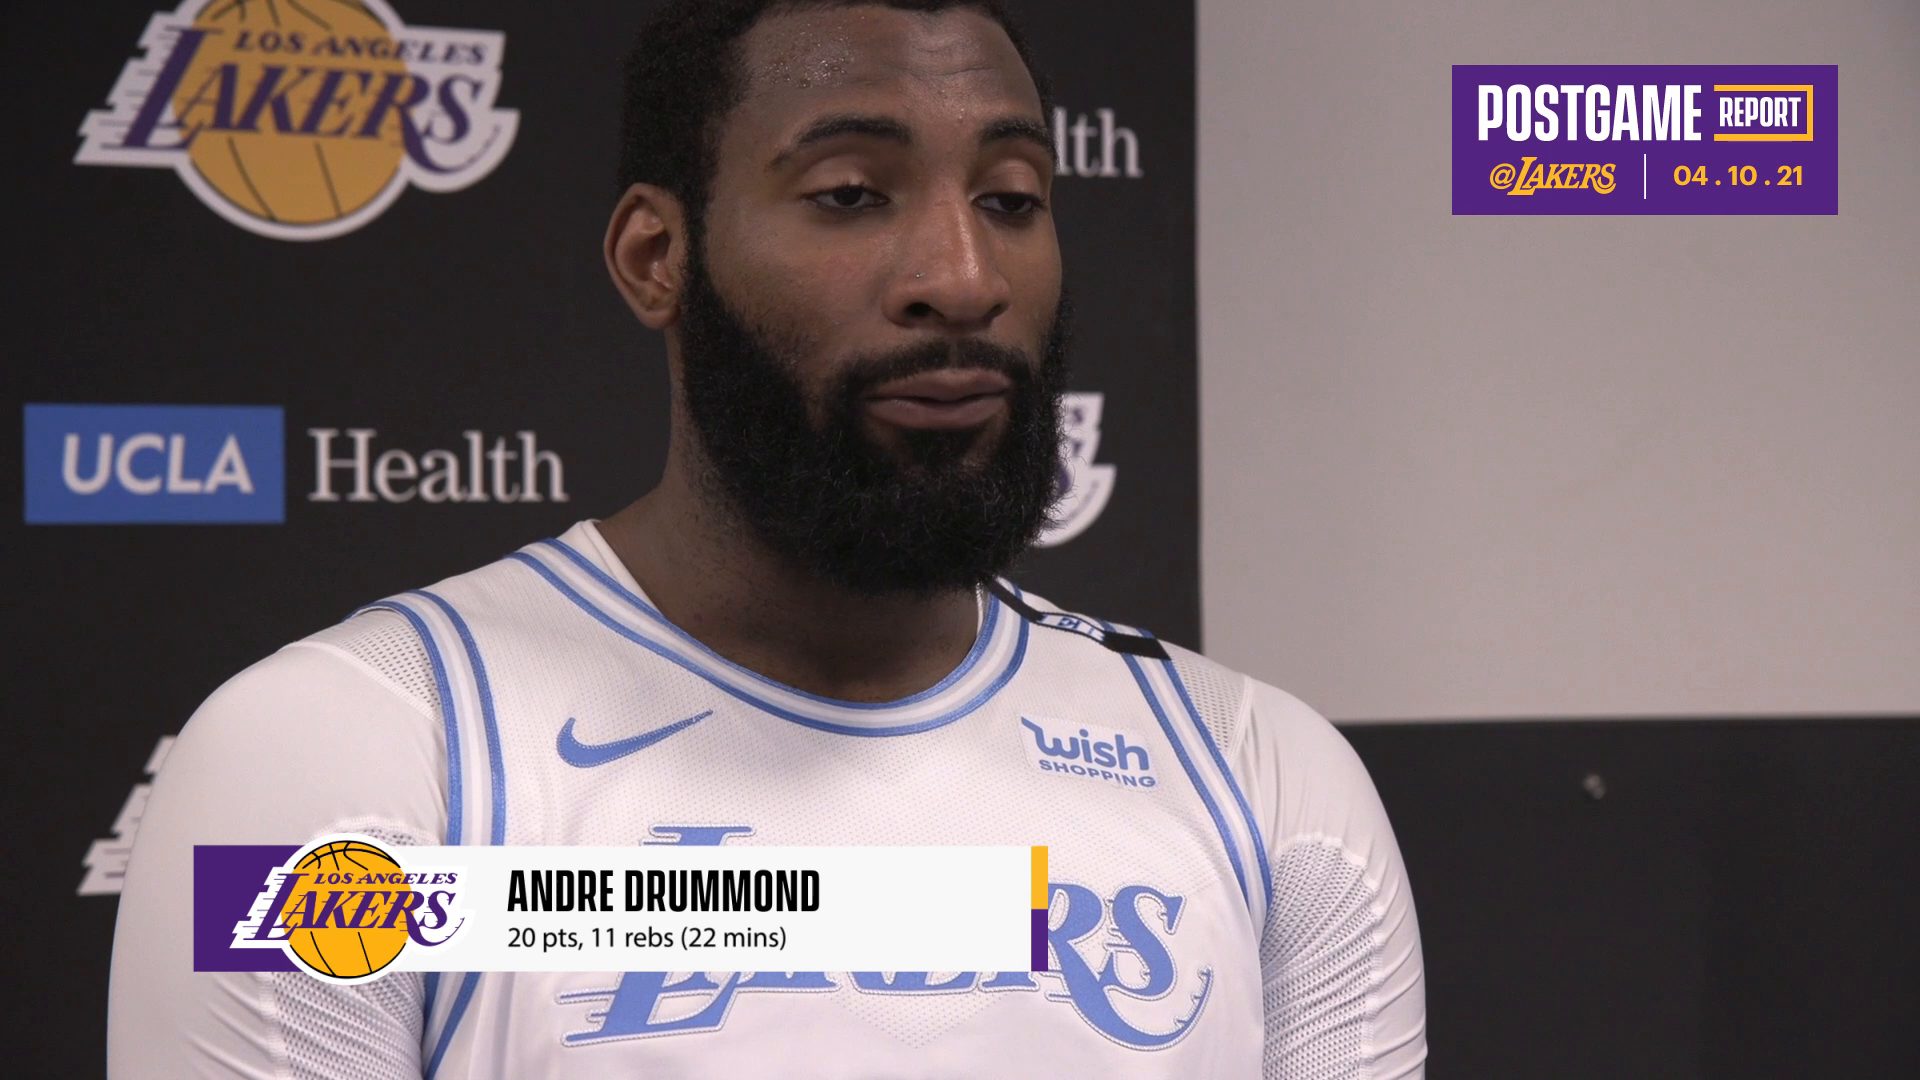 Lakers Postgame: Andre Drummond (4/10/21)